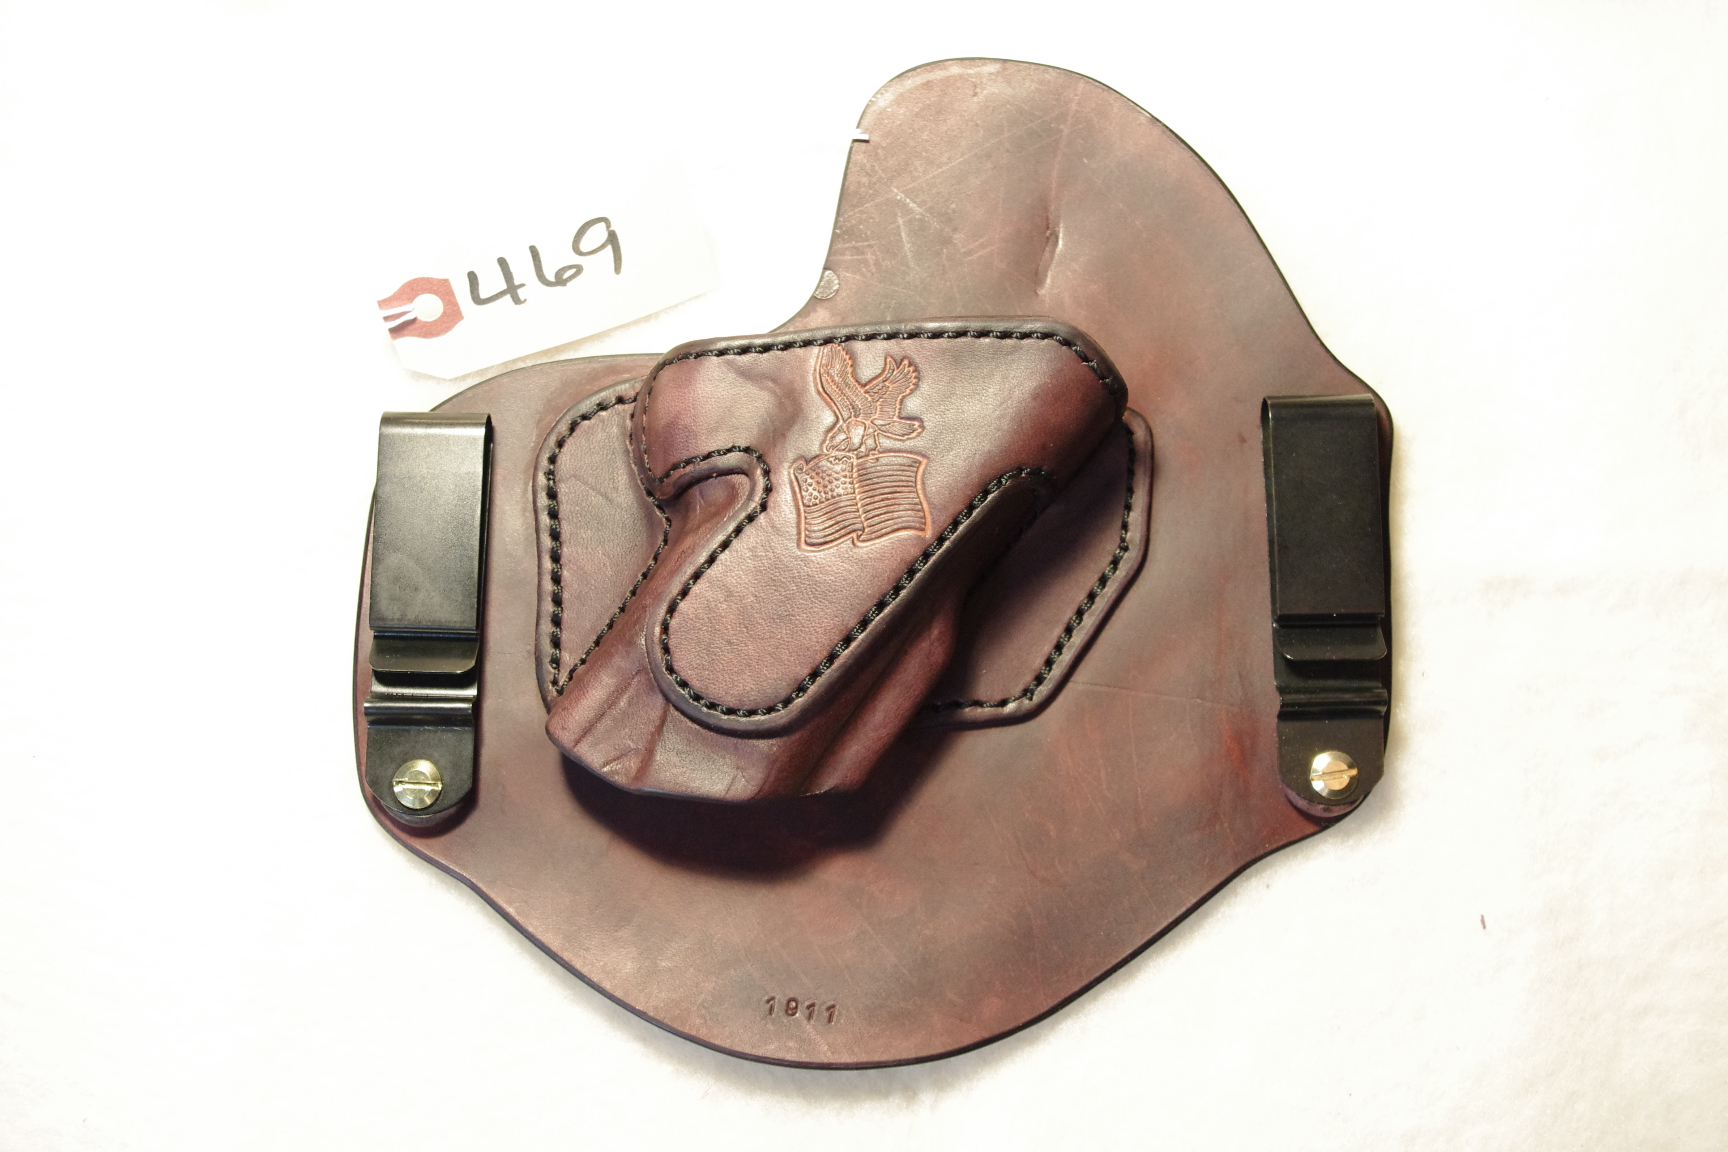 IWB Invisi-Tuck Extreme holster for a Kimber Warrior (sold)